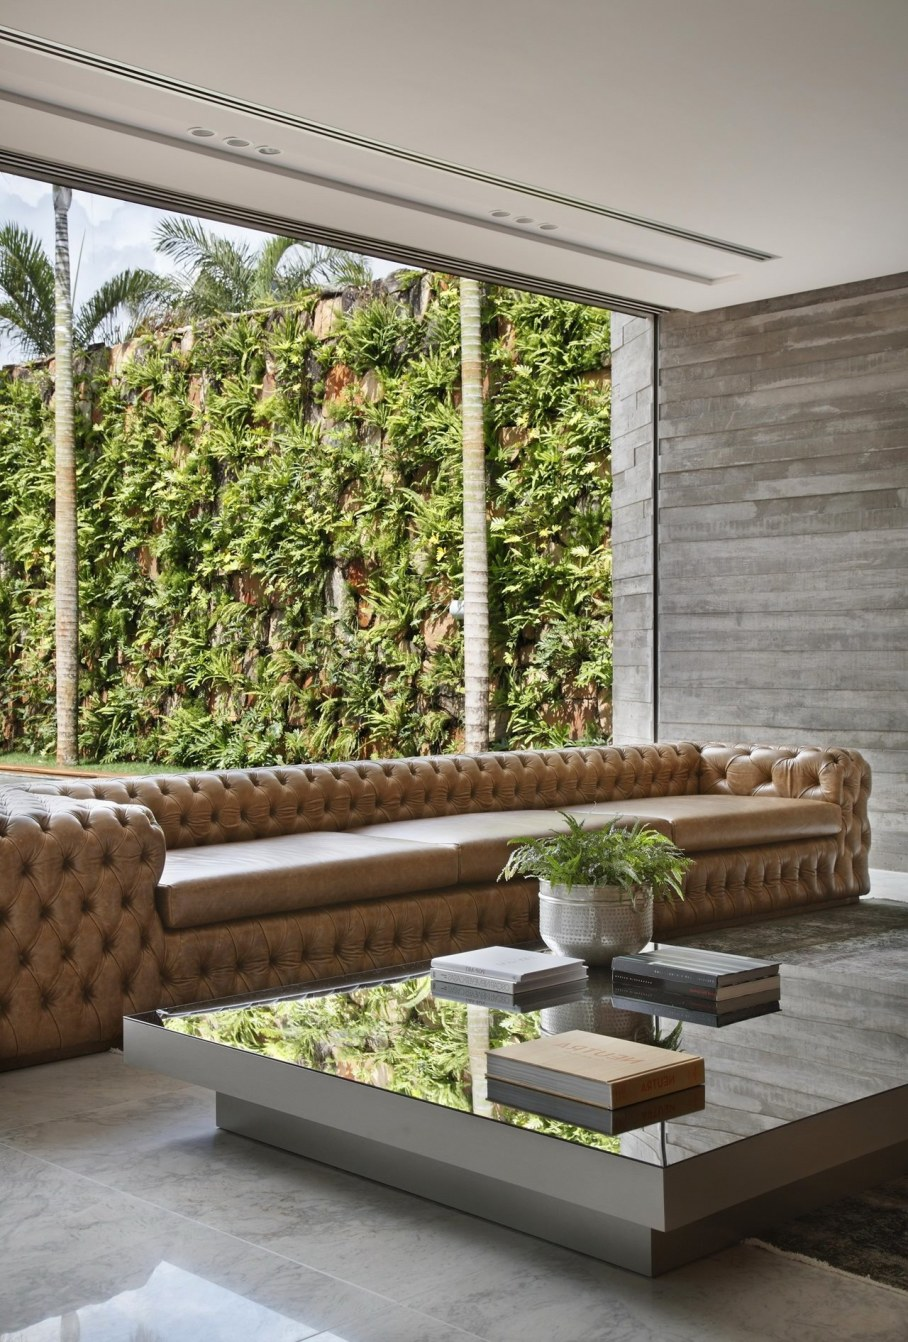 AN House From Studio Guilherme Torres - Living room 2